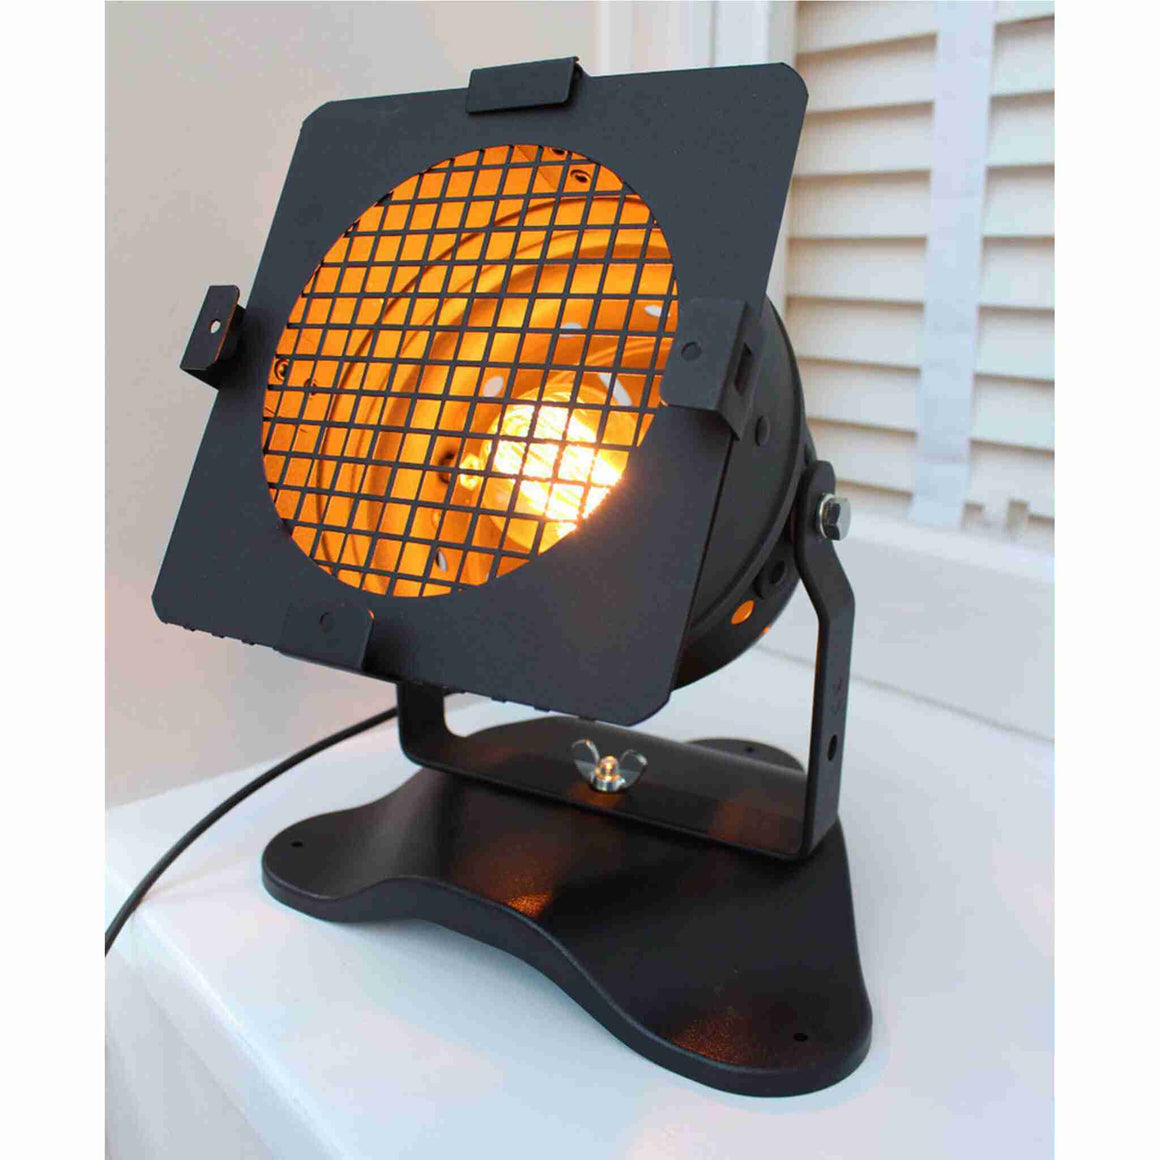 Lampsy Theatre Spot Light Table Lamp - Black - Table Lamps - Lampsy